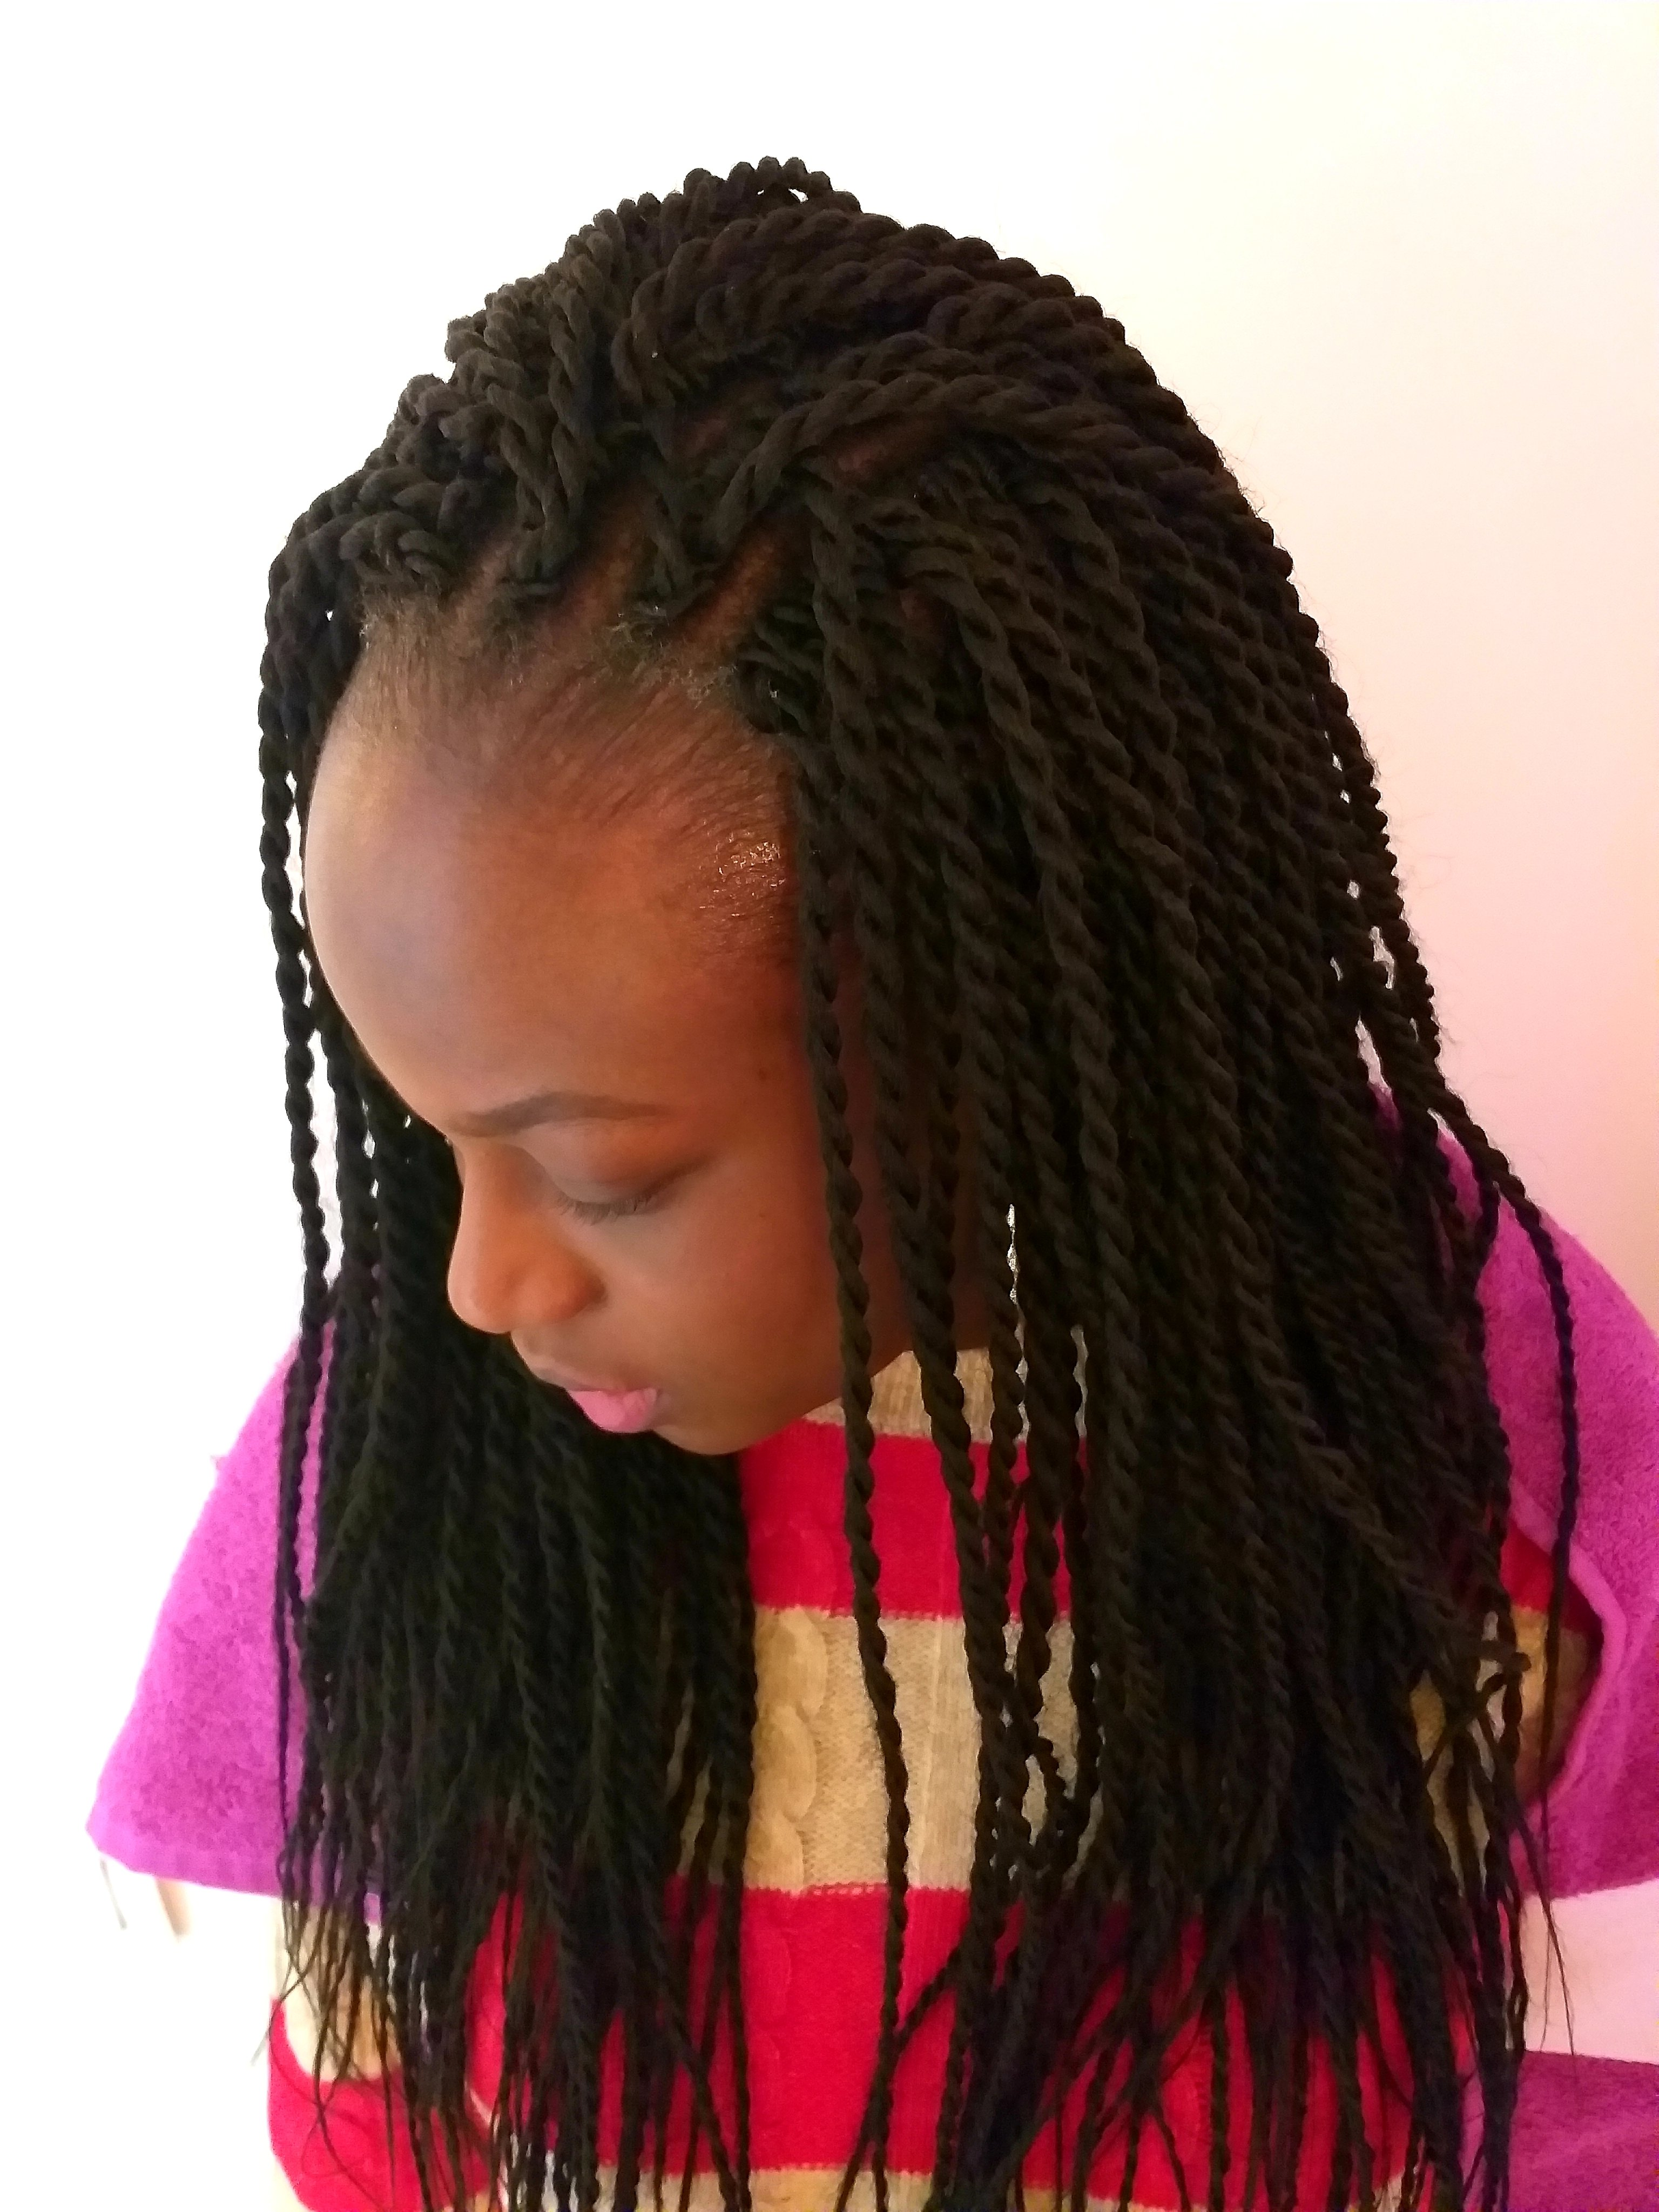 salon de coiffure afro tresse tresses box braids crochet braids vanilles tissages paris 75 77 78 91 92 93 94 95 EKMTXKQU